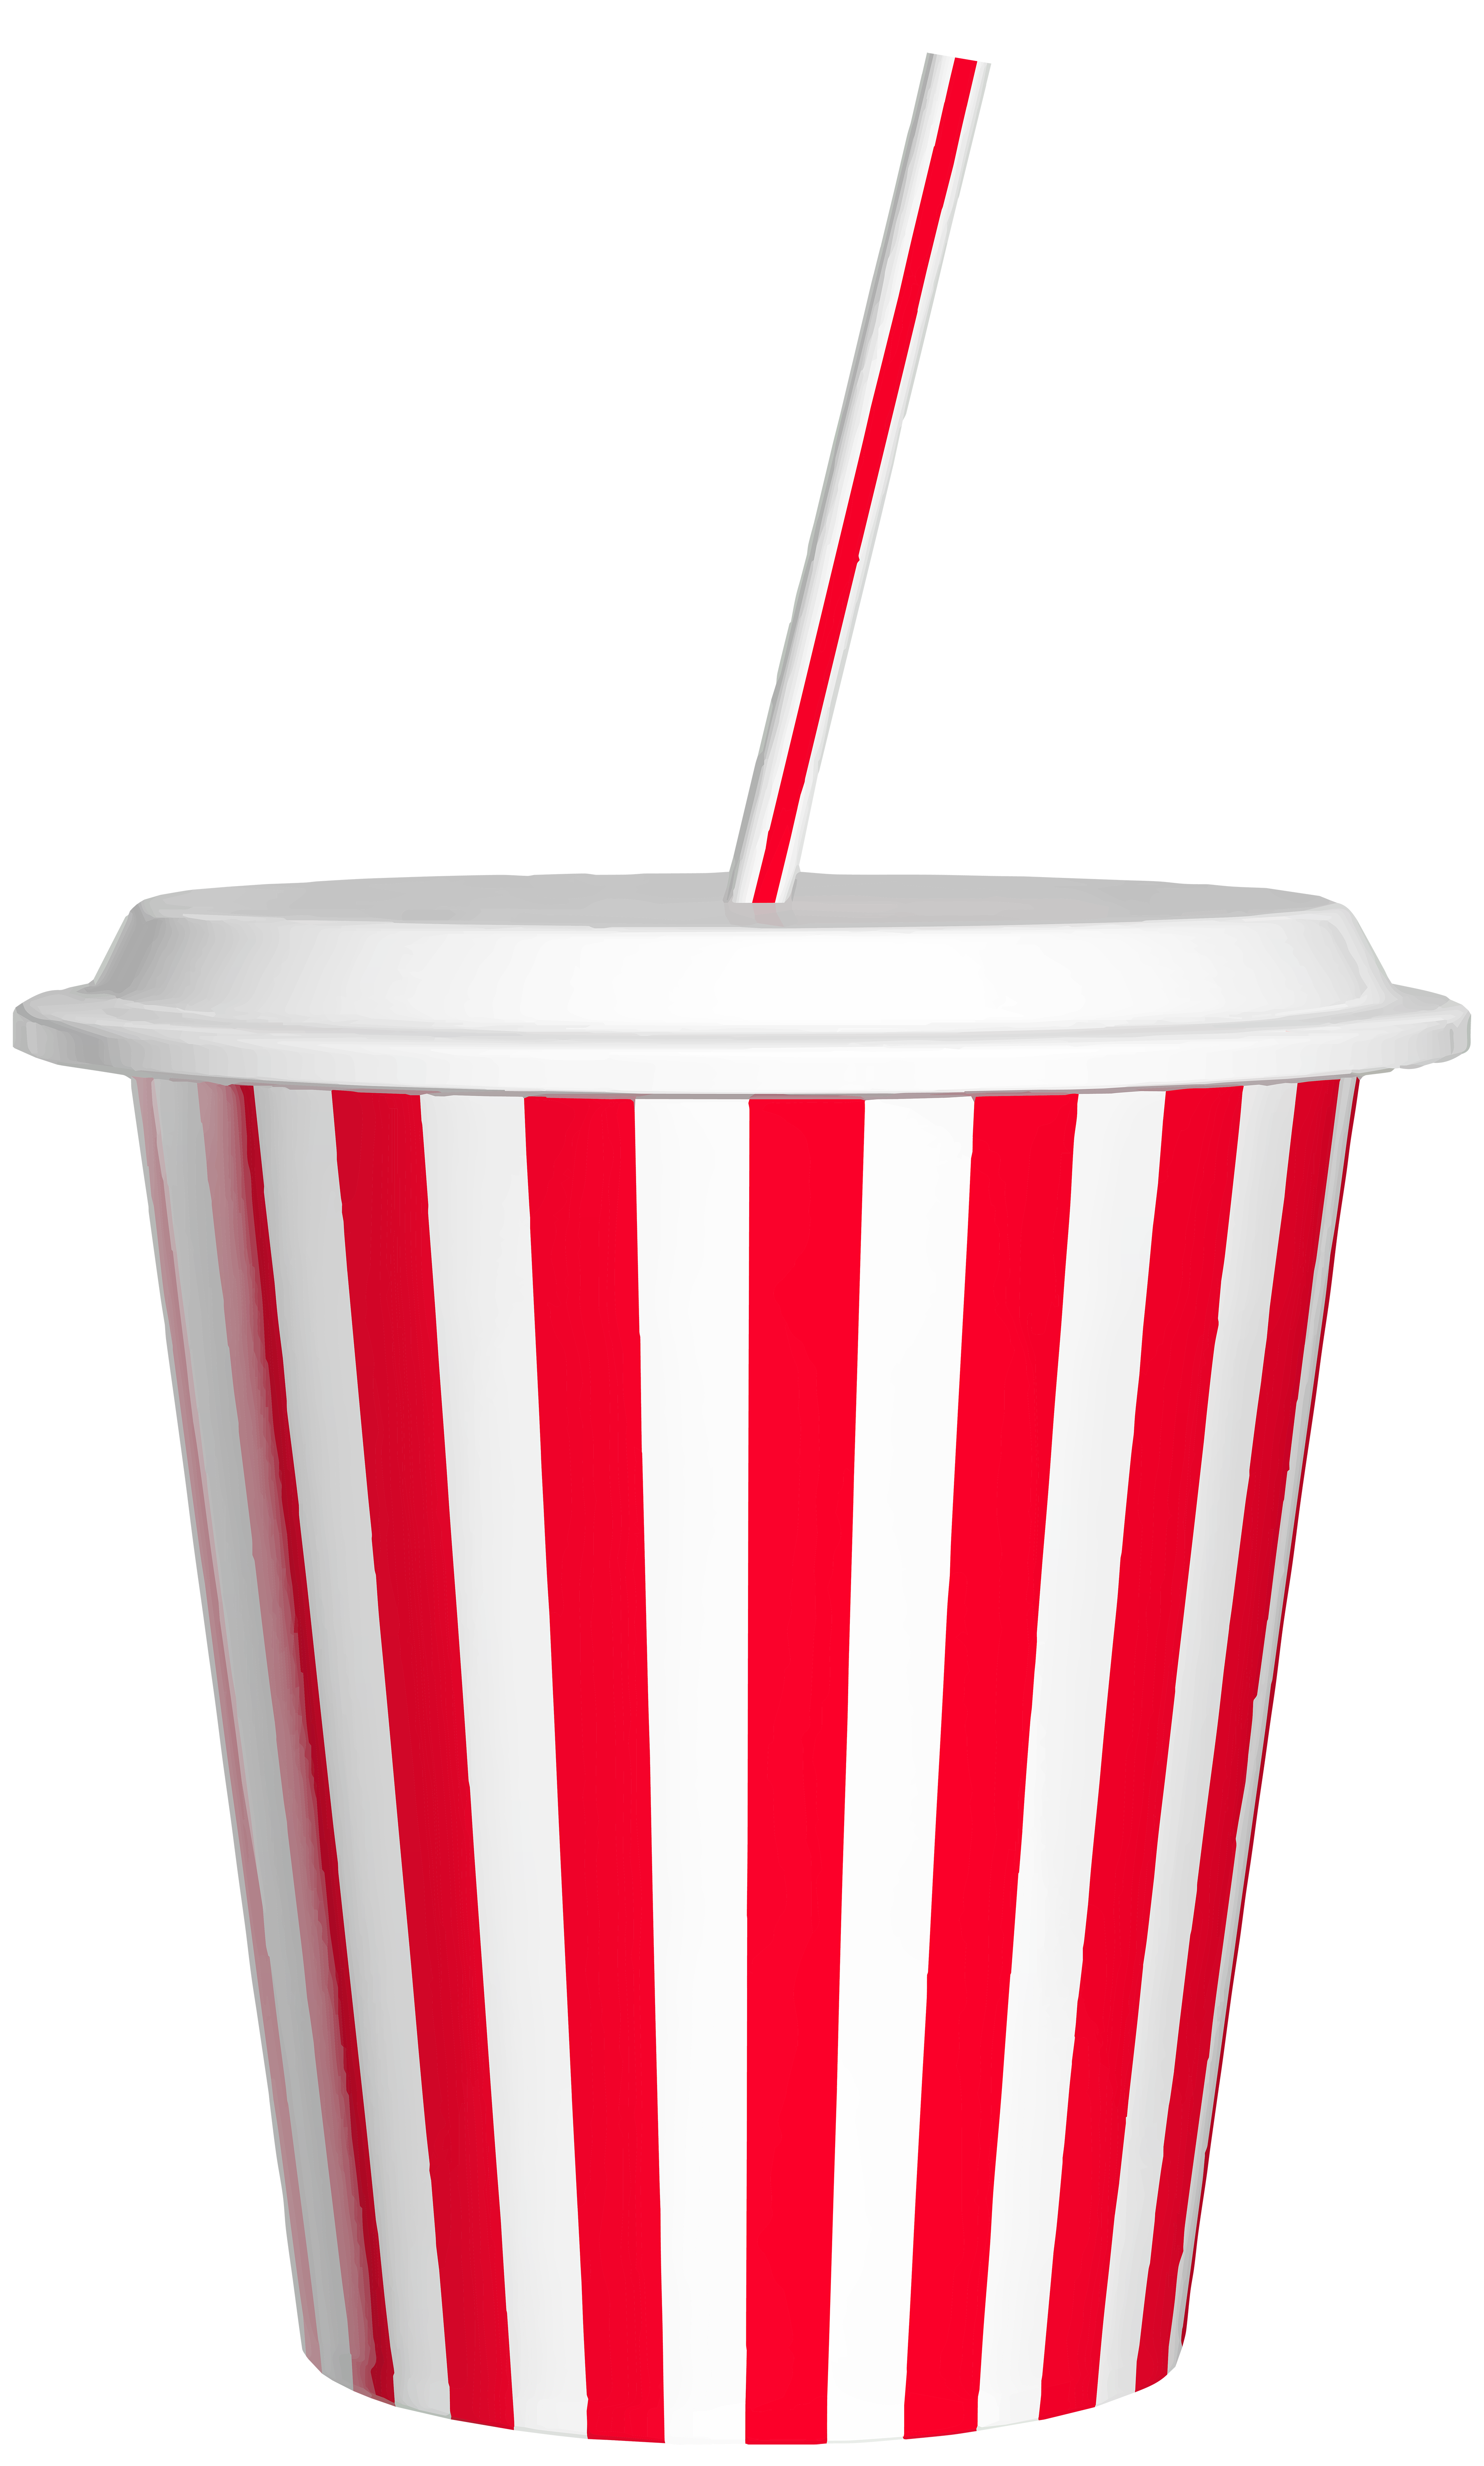 svg library stock Straw clipart. Drink cup with png